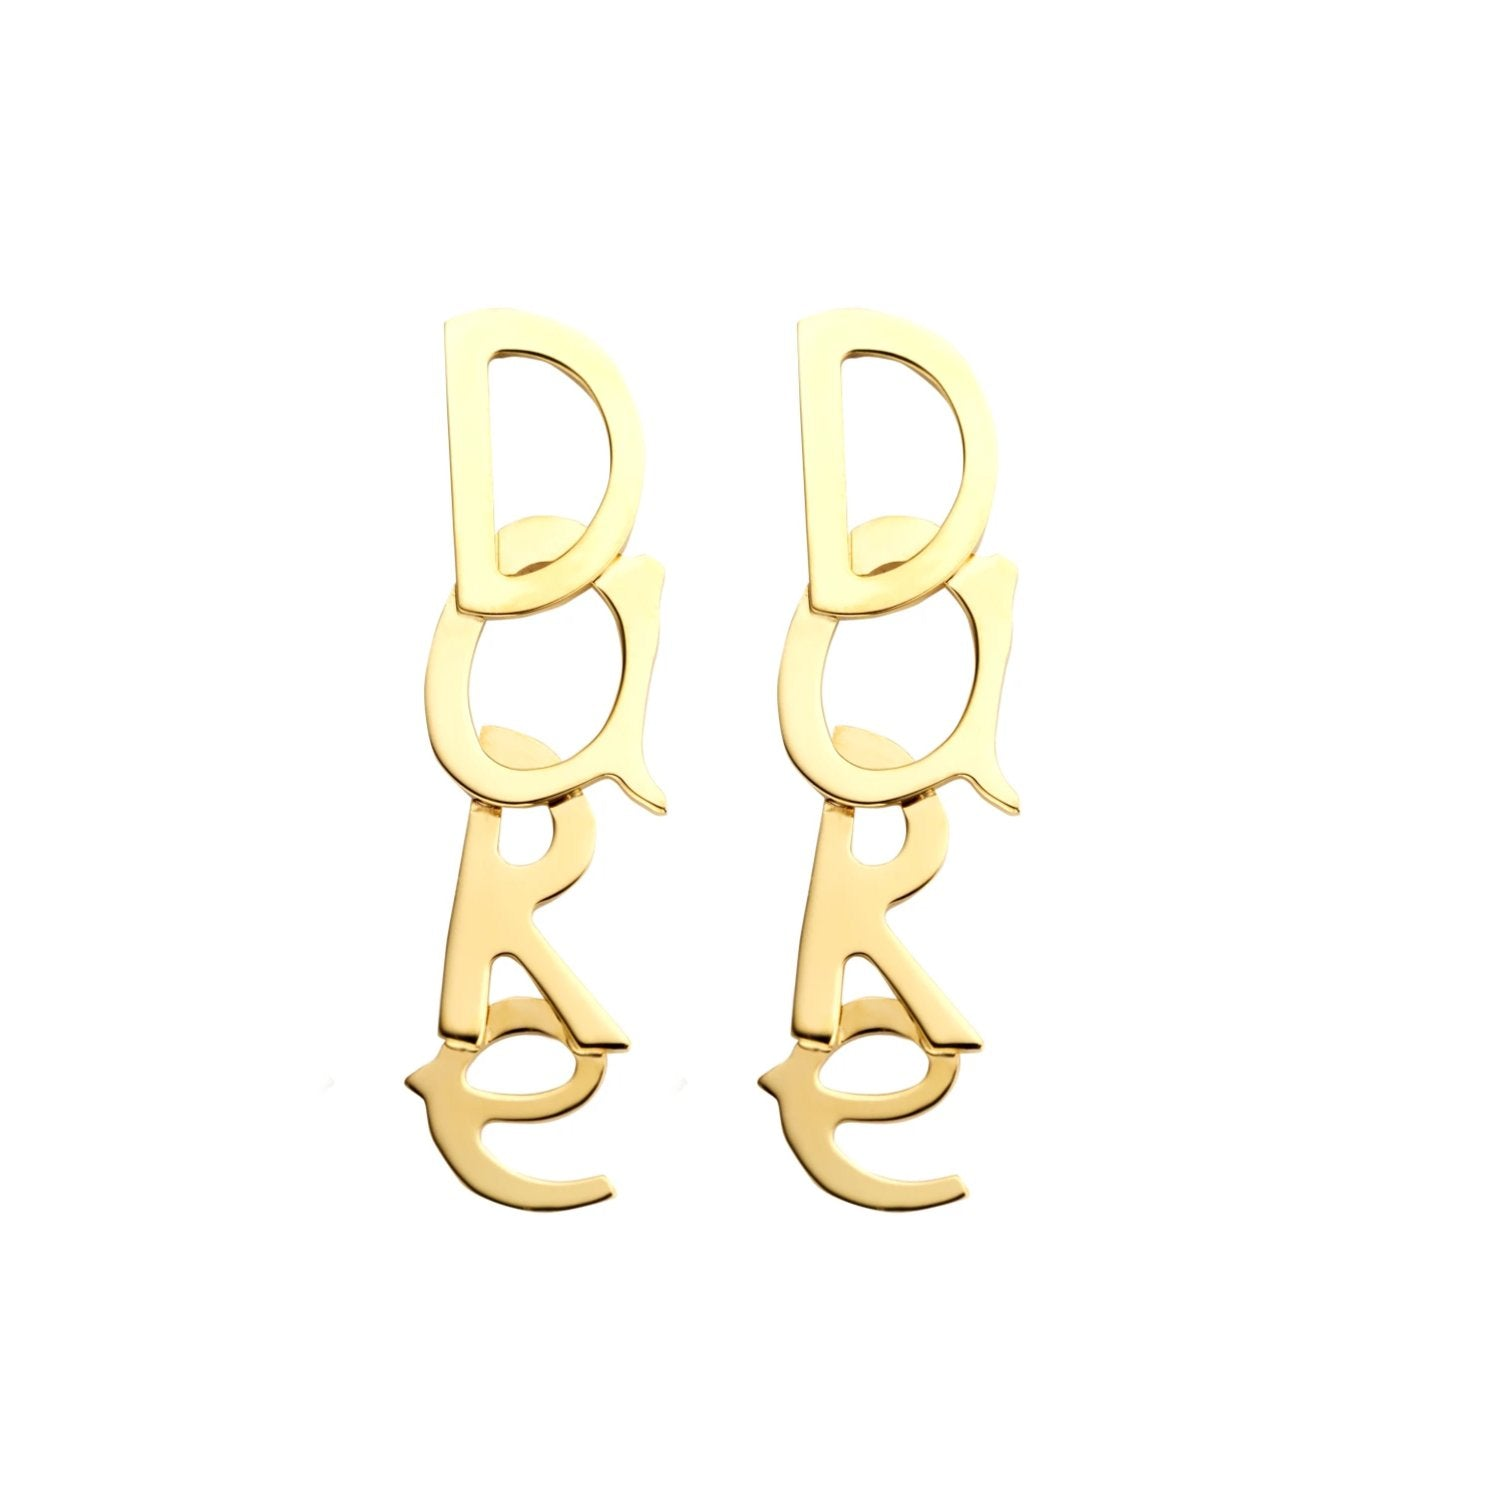 Dare gold earrings